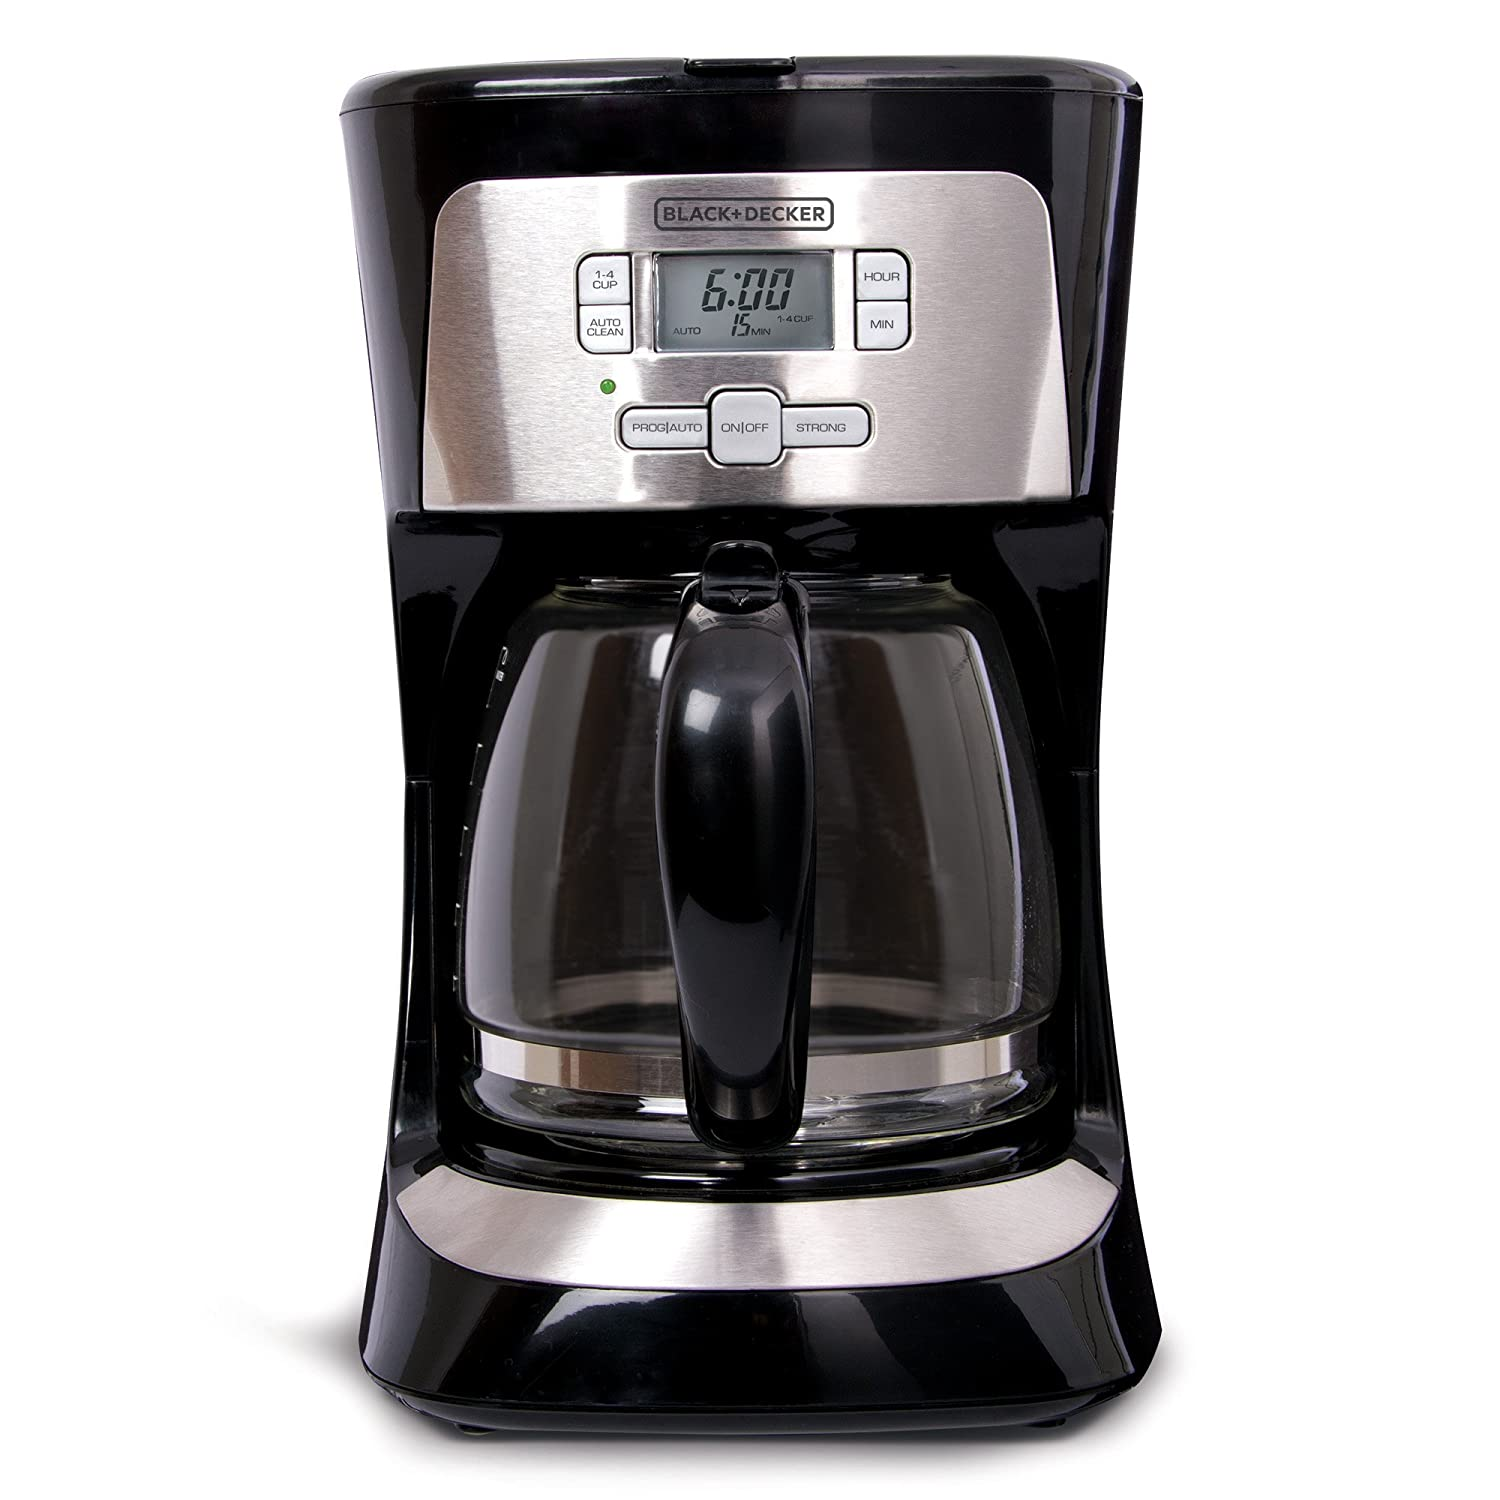 BLACK+DECKER 12-Cup Programmable Coffee Maker, Black